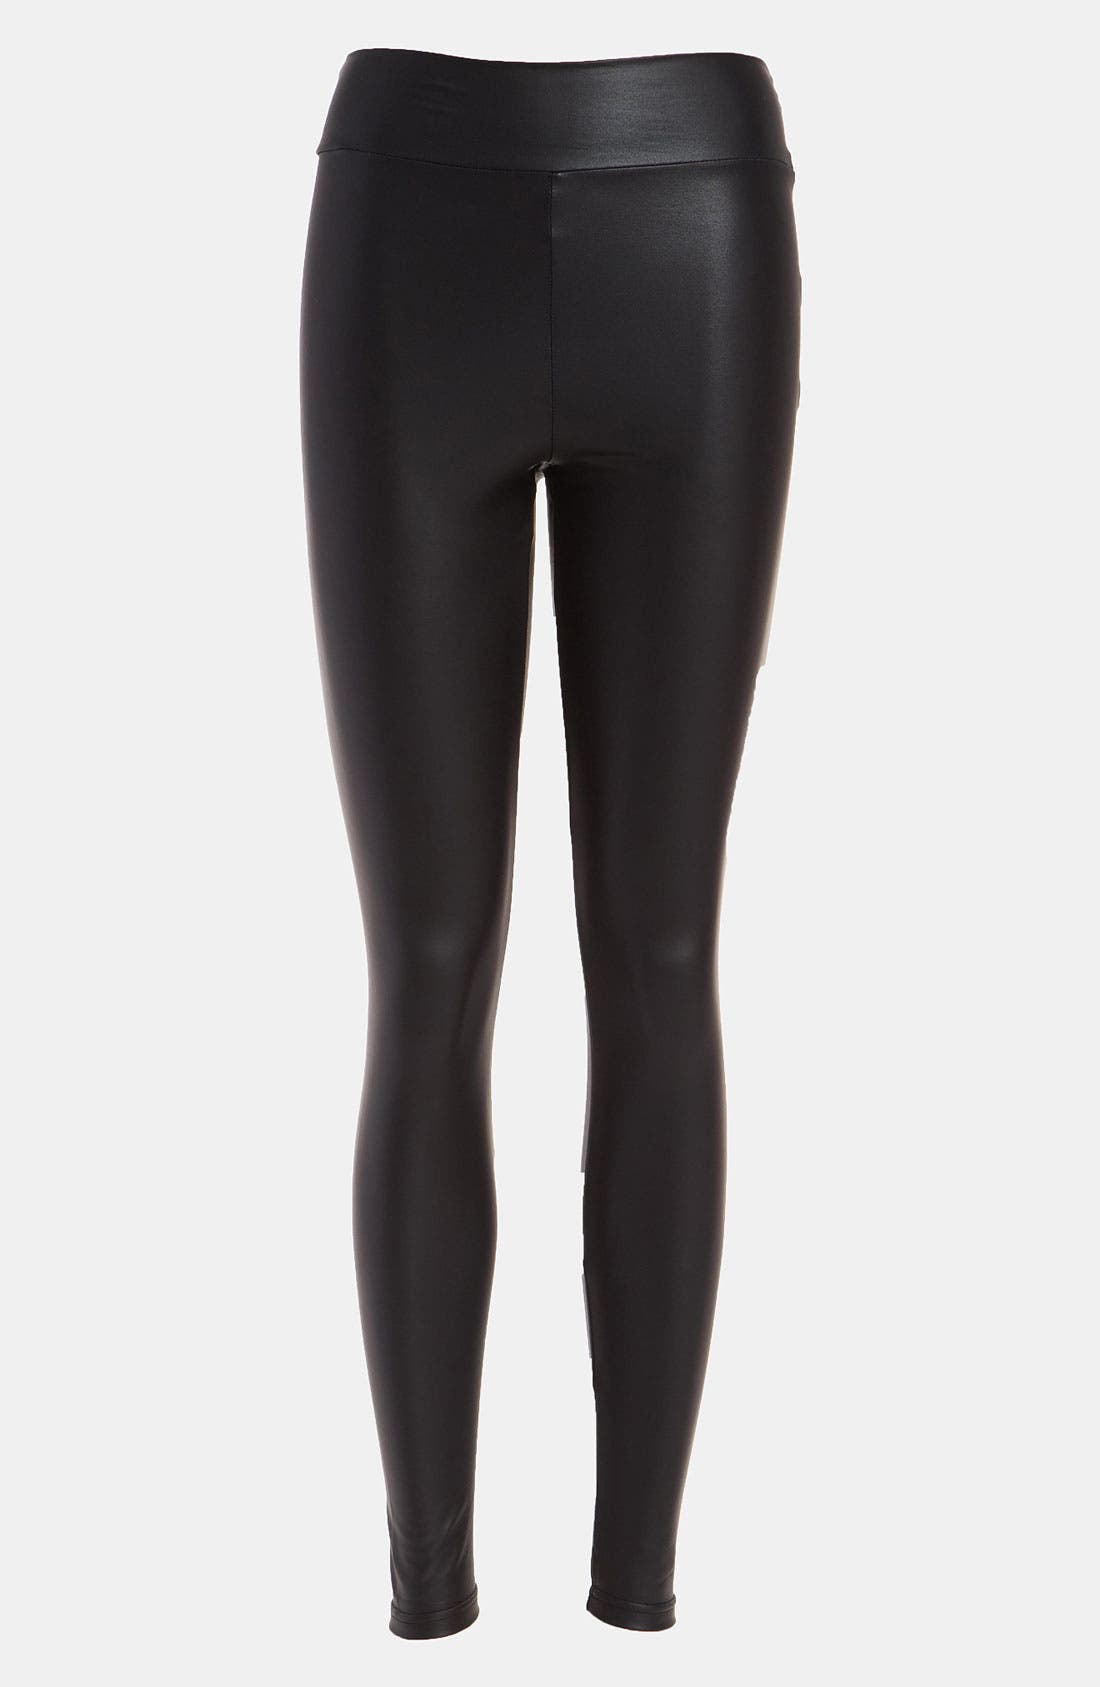 Alternate Image 1 Selected - MINKPINK 'Greased Lightning' High Waist Leggings